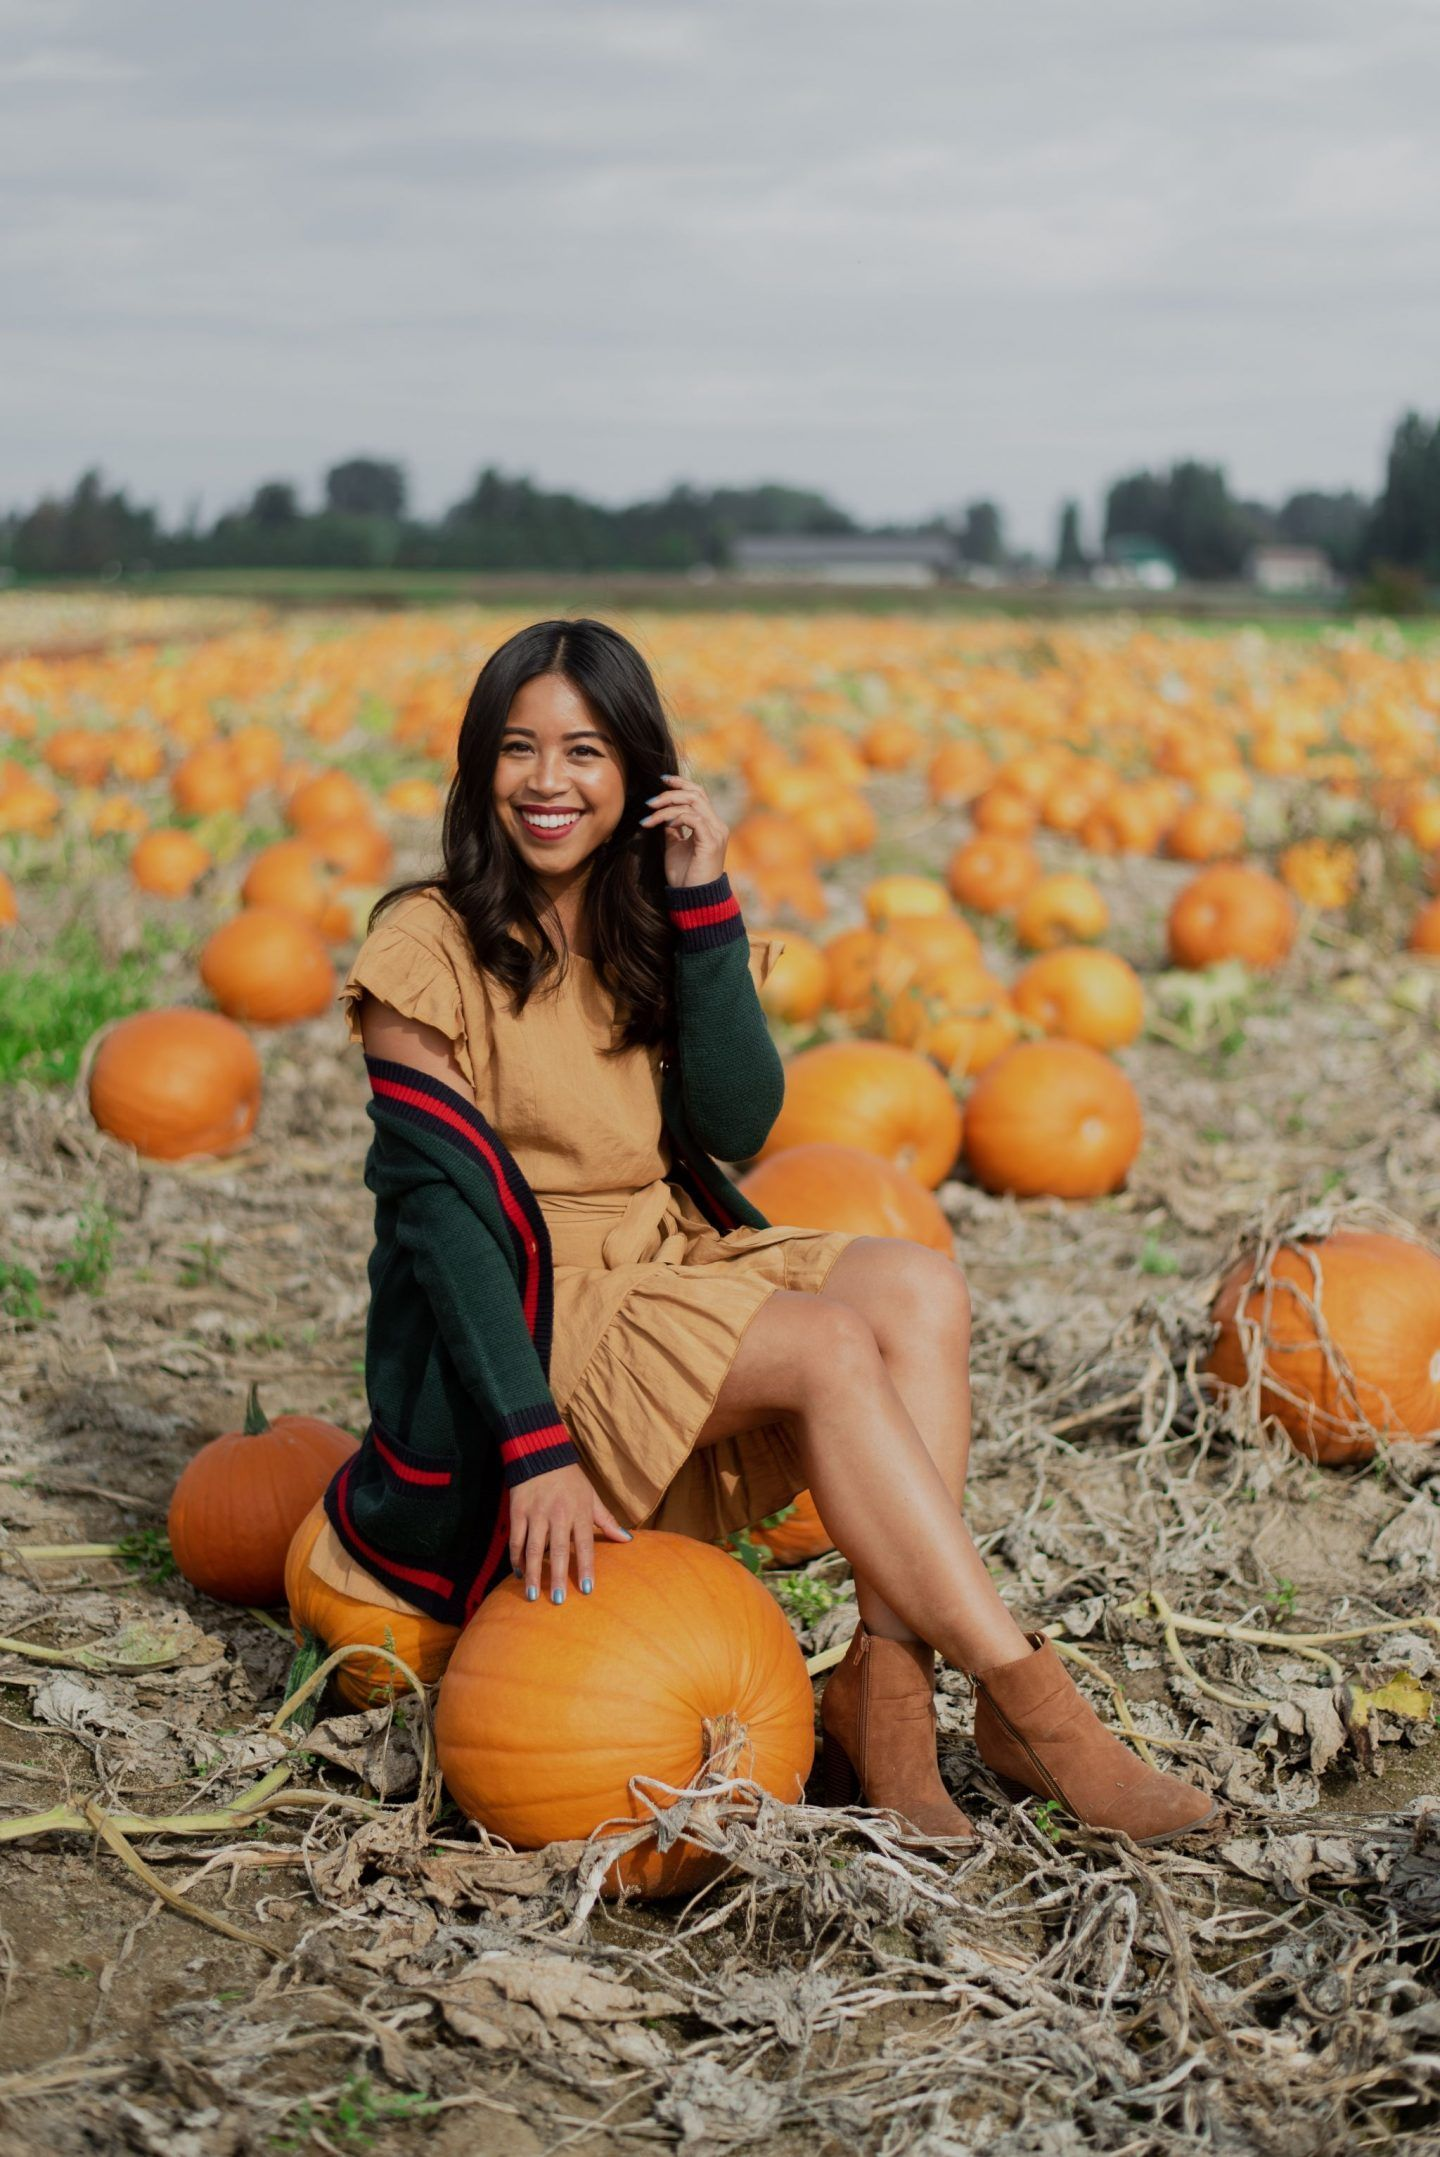 6 Pumpkin Patch Outfit Ideas You Can Wear This Fall - fall fashion - pumpkin patch - pumpkin patch pictures - pumpkin patch pictures friends - october - fall fashion - fall style -varsity cardigan- just fab shoes - fall outfit ideas #pumpkinpatchoutfit 6 Pumpkin Patch Outfit Ideas You Can Wear This Fall - fall fashion - pumpkin patch - pumpkin patch pictures - pumpkin patch pictures friends - october - fall fashion - fall style -varsity cardigan- just fab shoes - fall outfit ideas #pumpkinpatchoutfit